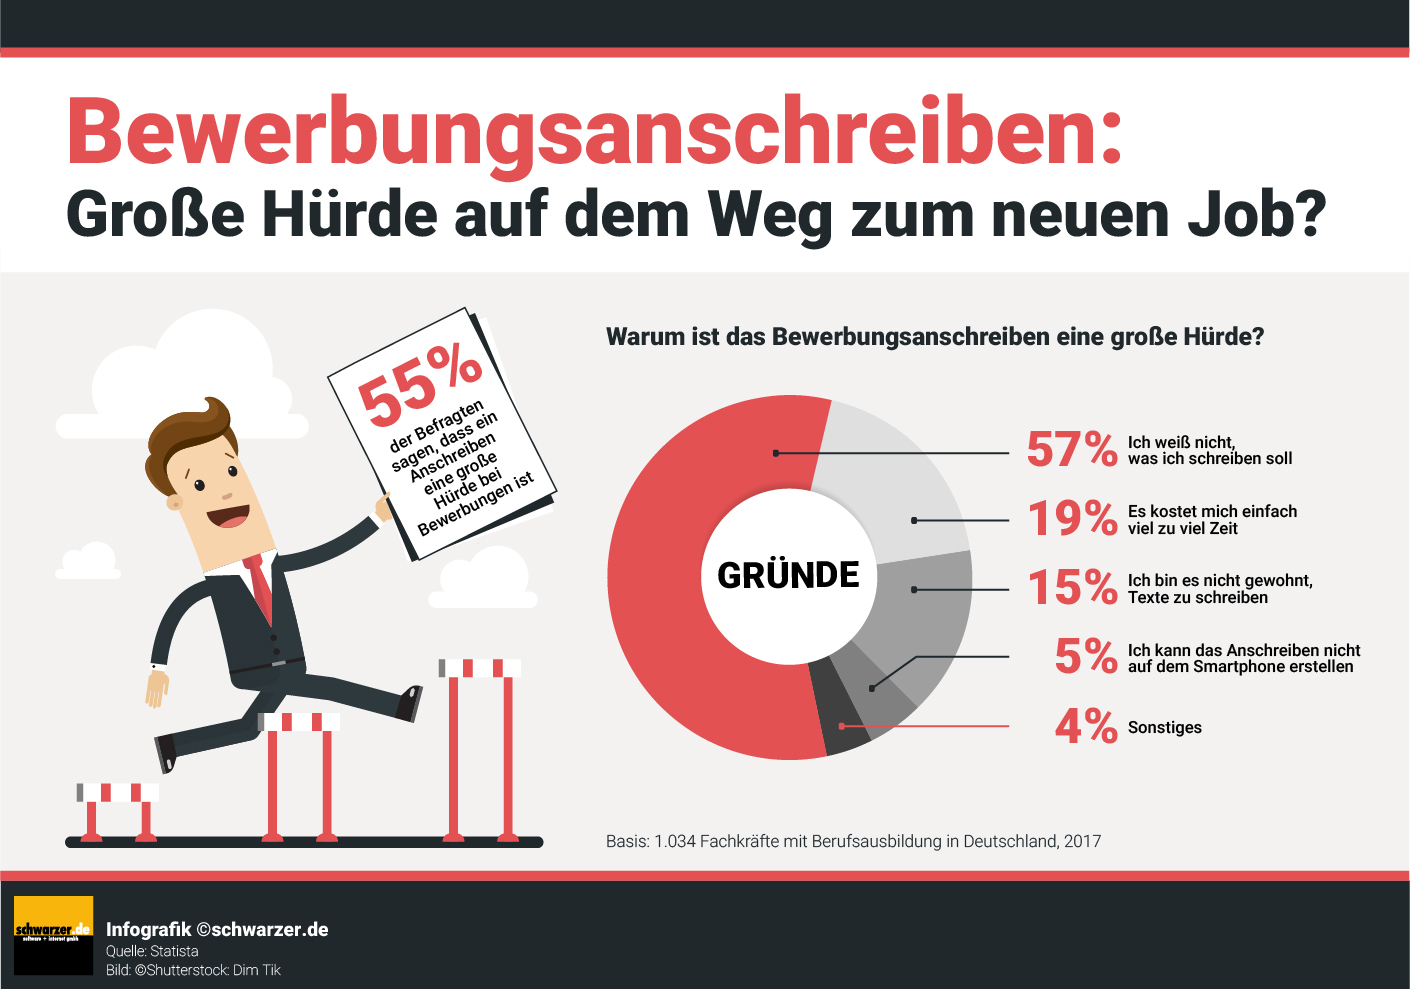 Infografik: Bewerbungsanschreiben - Hürde auf dem Weg zum neuen Job